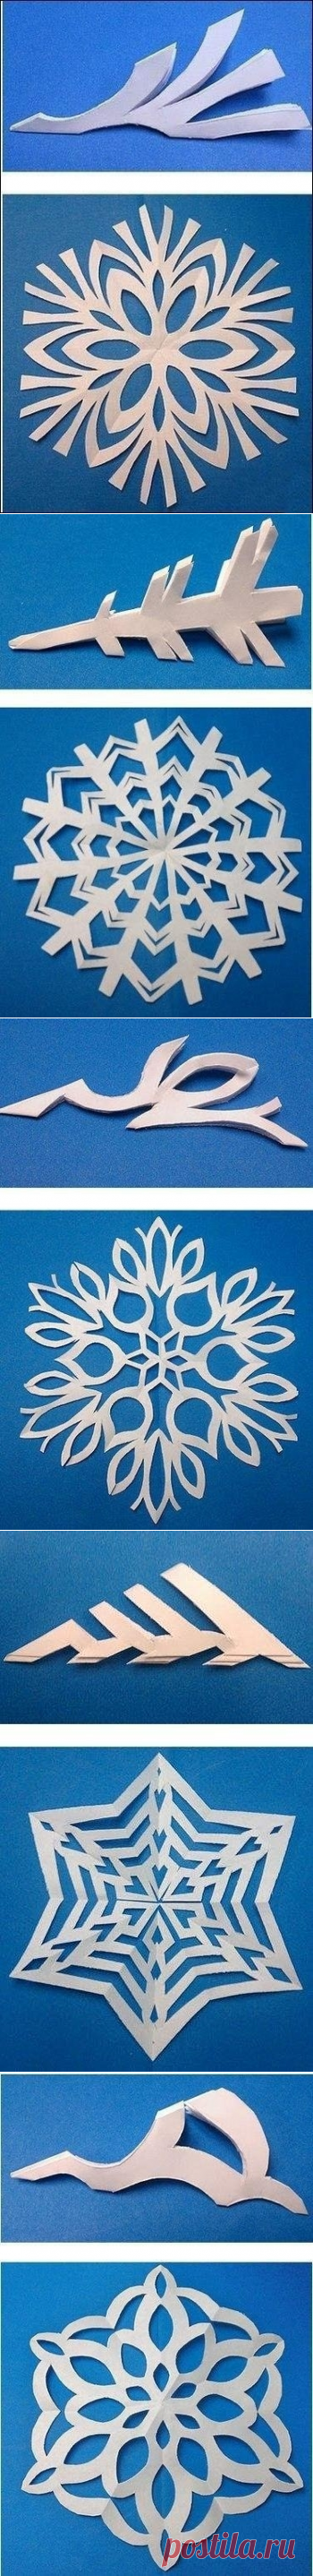 We cut out snowflakes